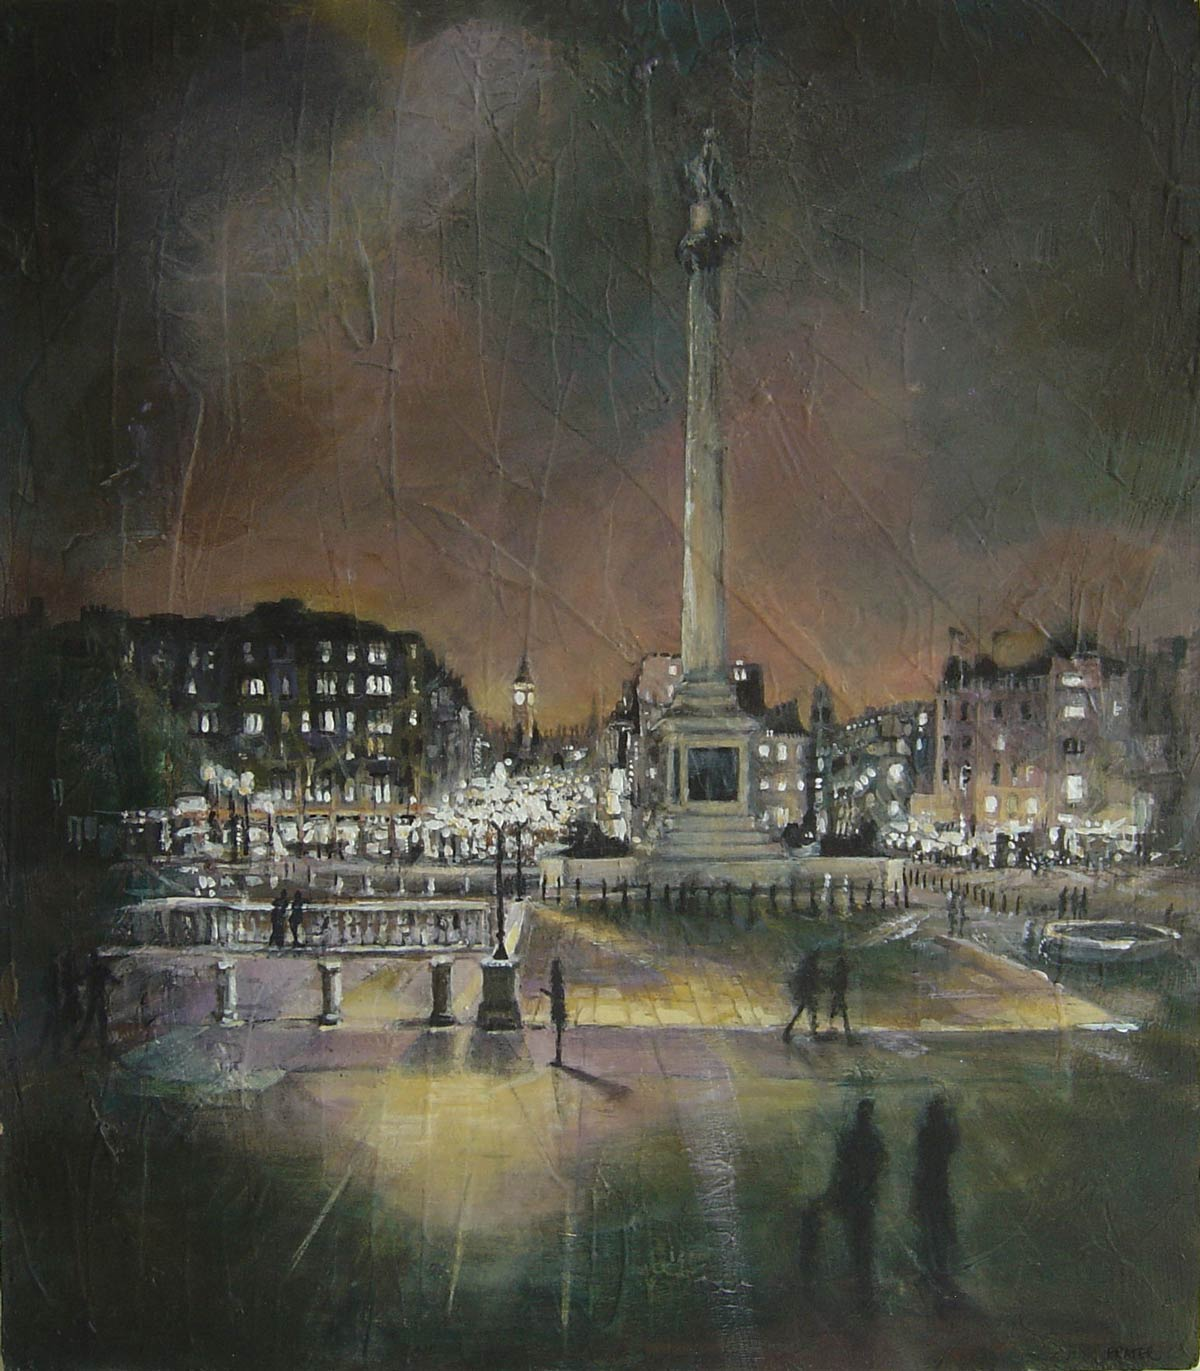 Trafalgar Square evening January 2010 43 x 41 cm